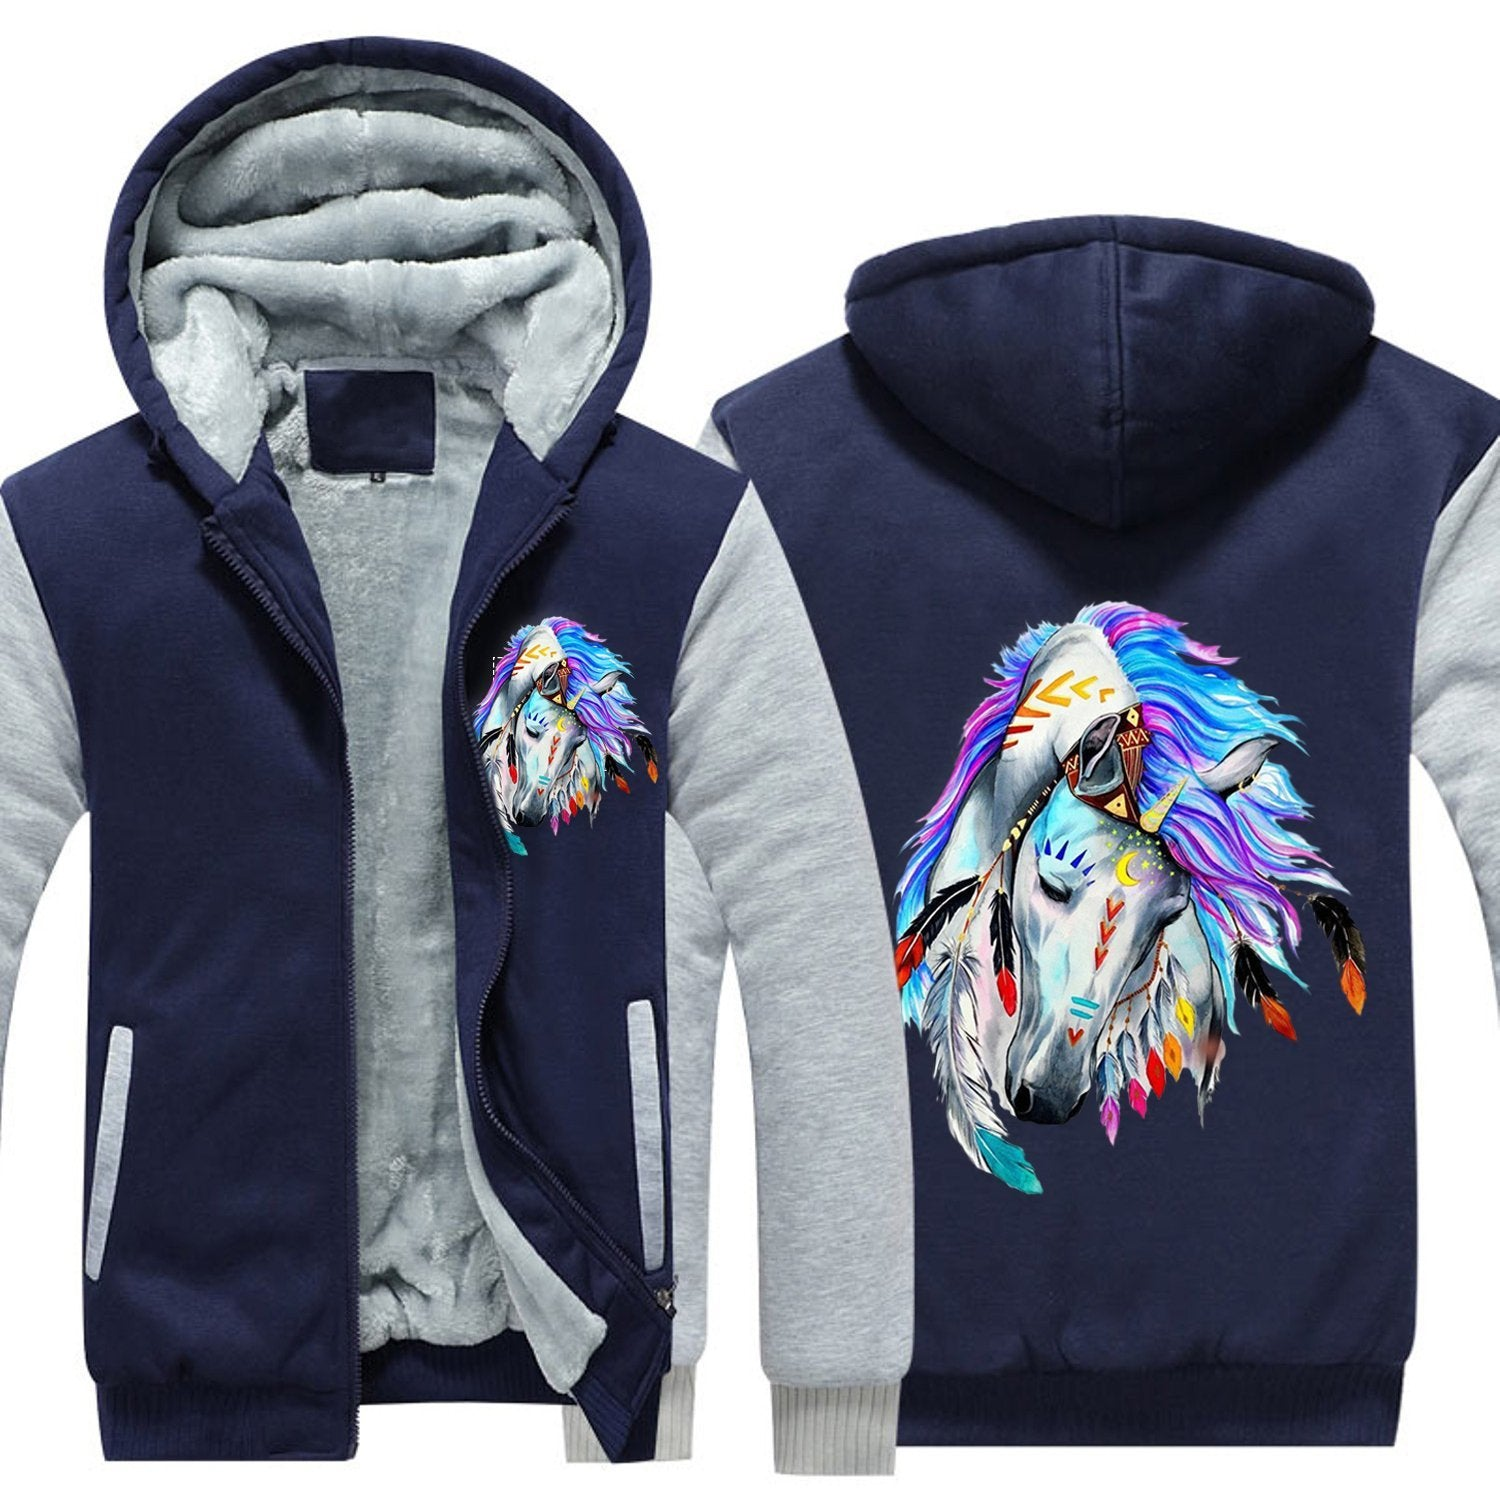 Hooded Tracksuit - Unicorn SGTM040210